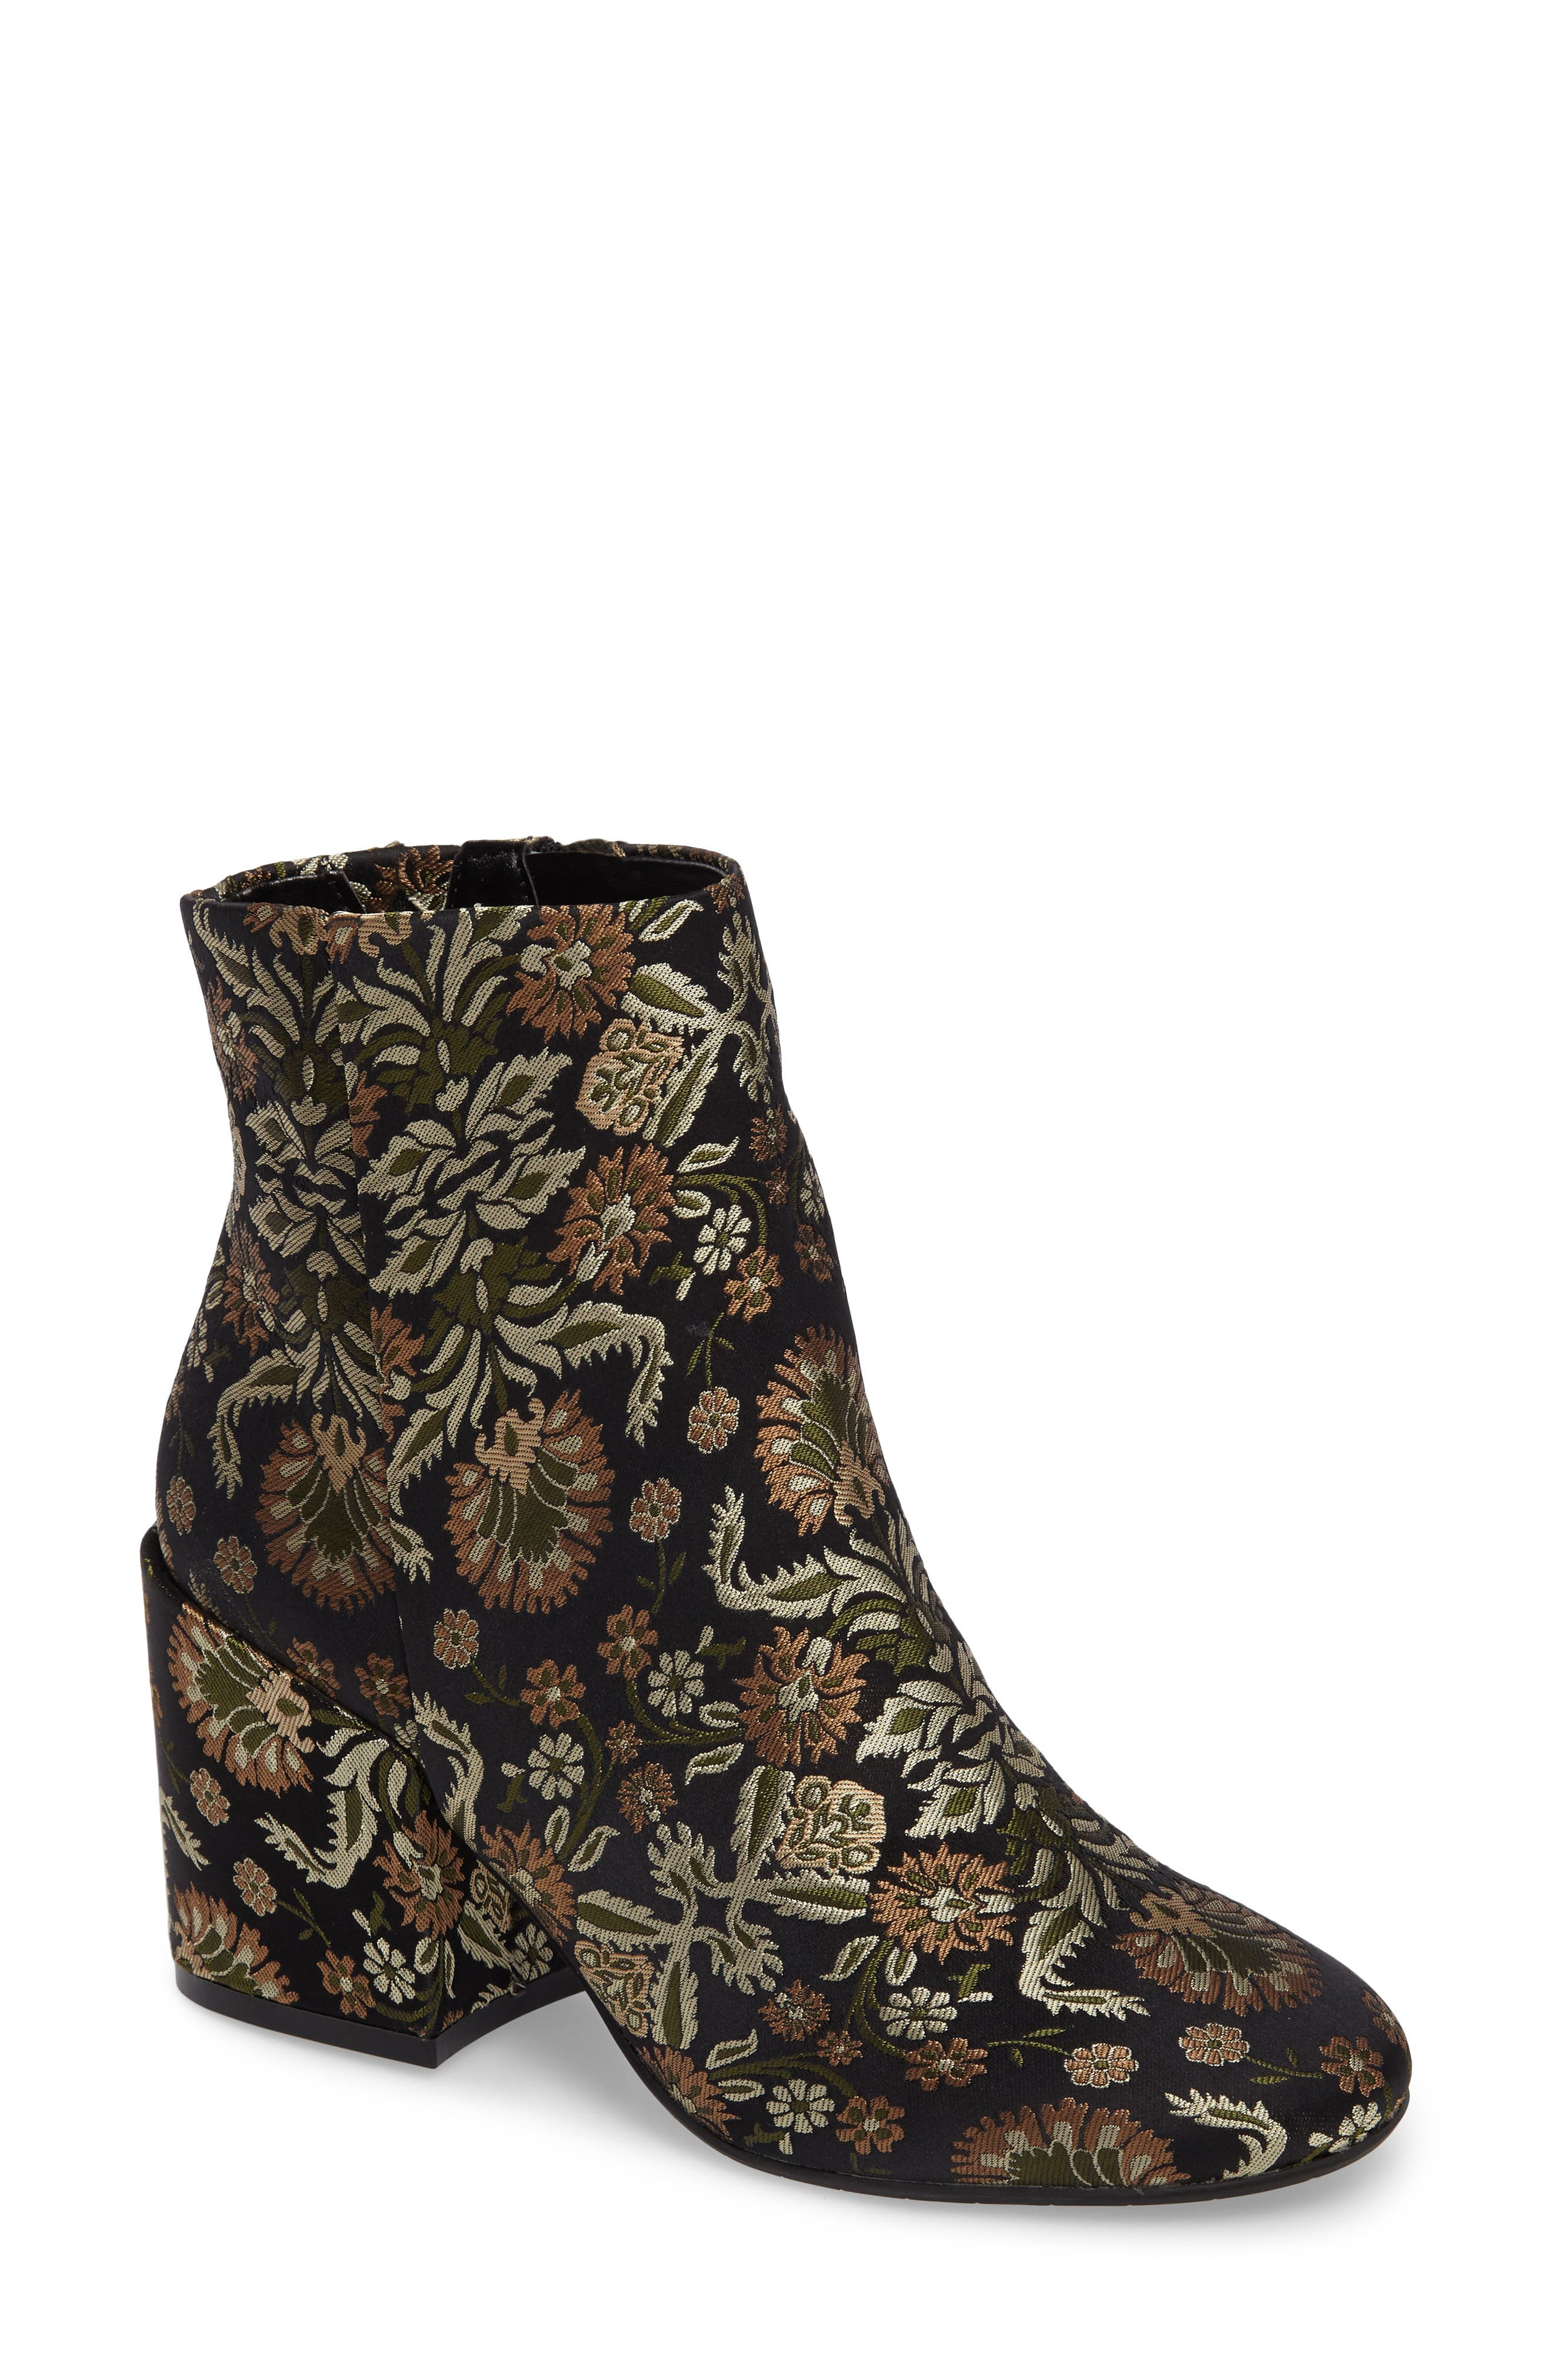 KENNETH COLE NEW YORK Reeve 4 Floral Appliqué Bootie